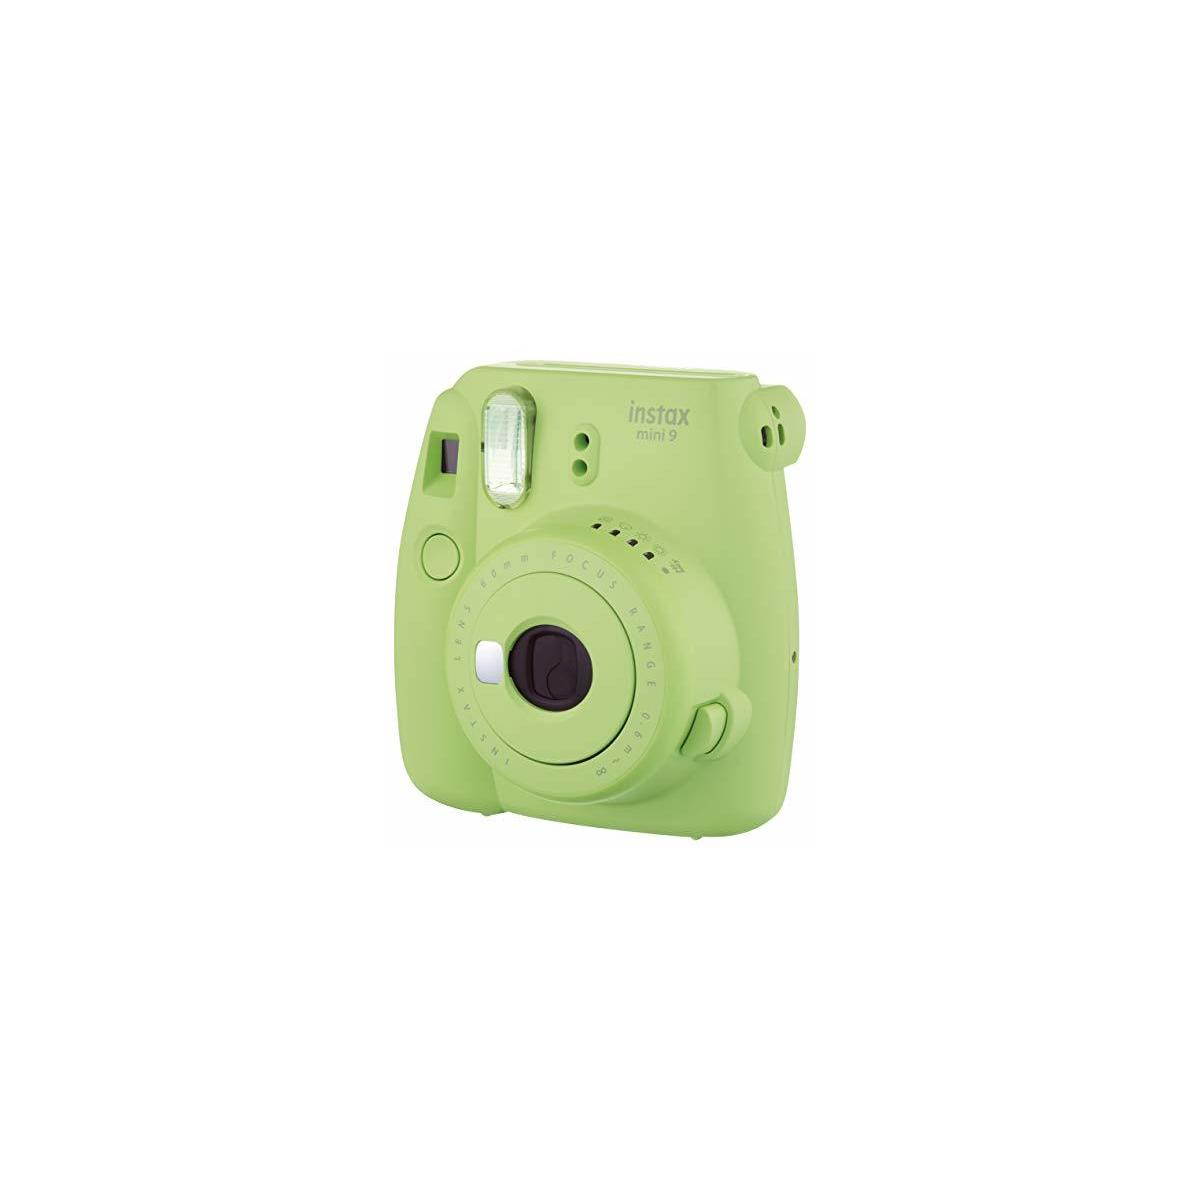 Fujifilm Instax Mini 9 Instant Camera, Lime Green, Style Base